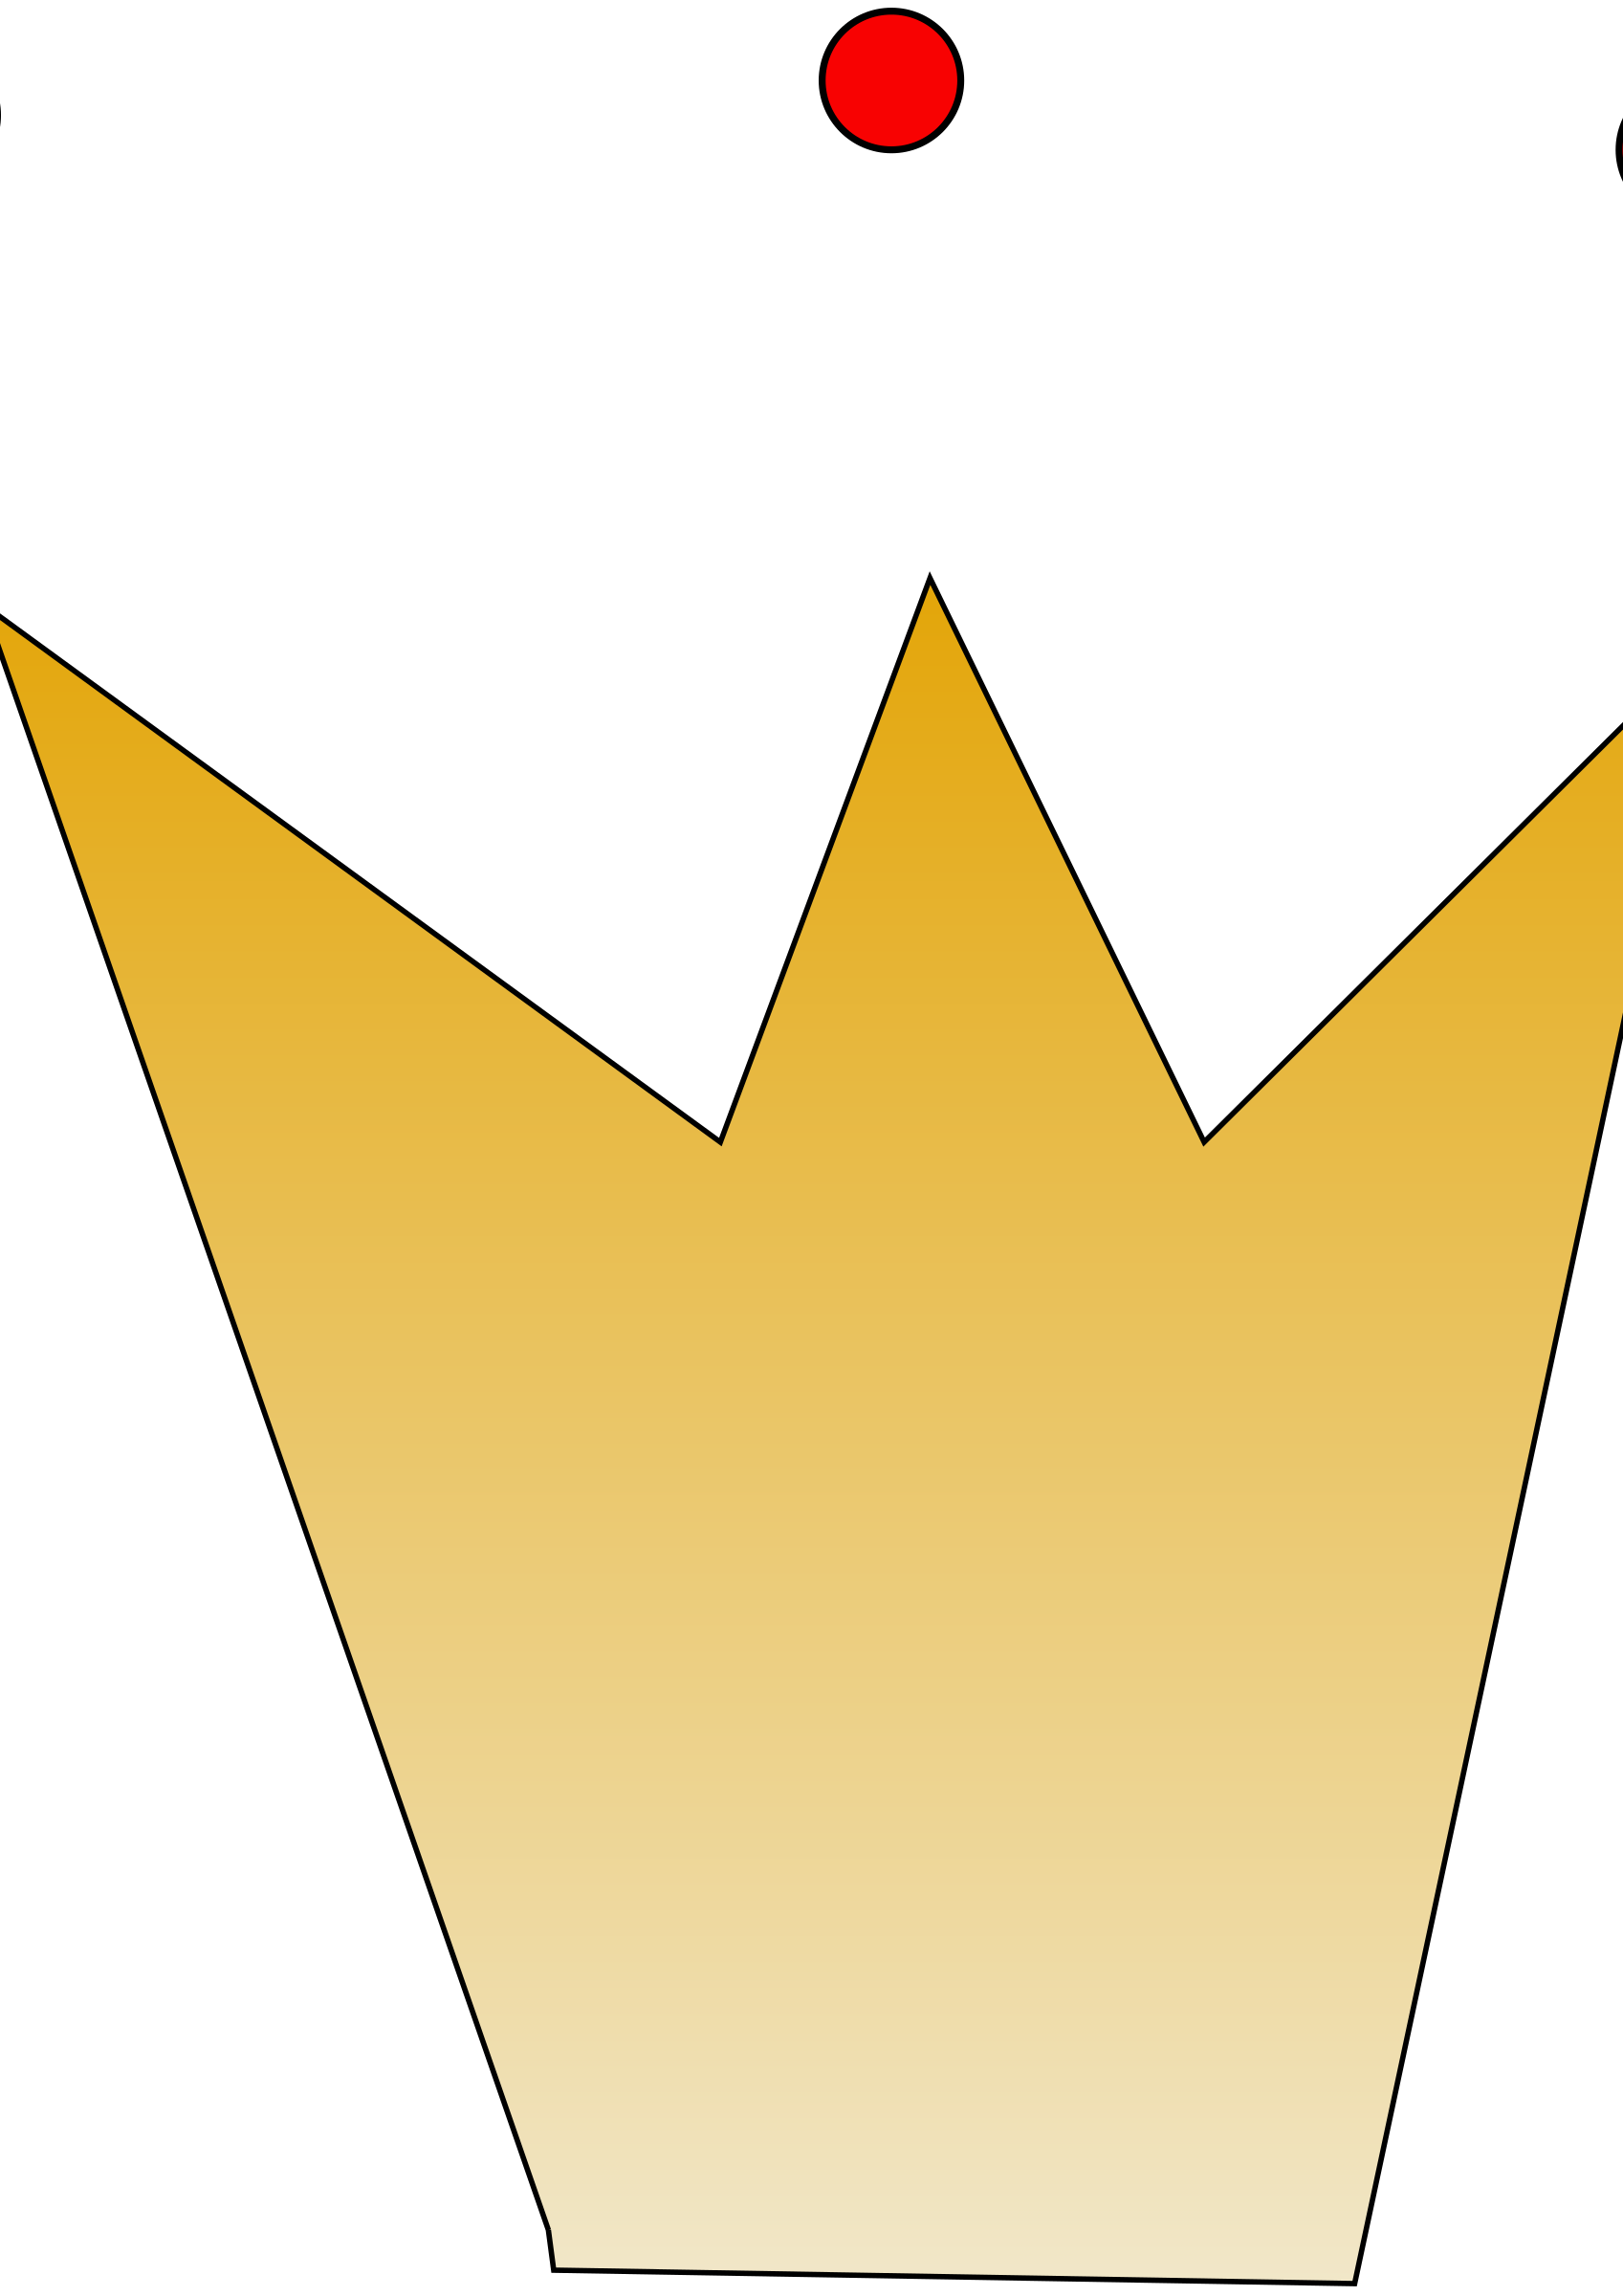 Krown by pegasossigi2